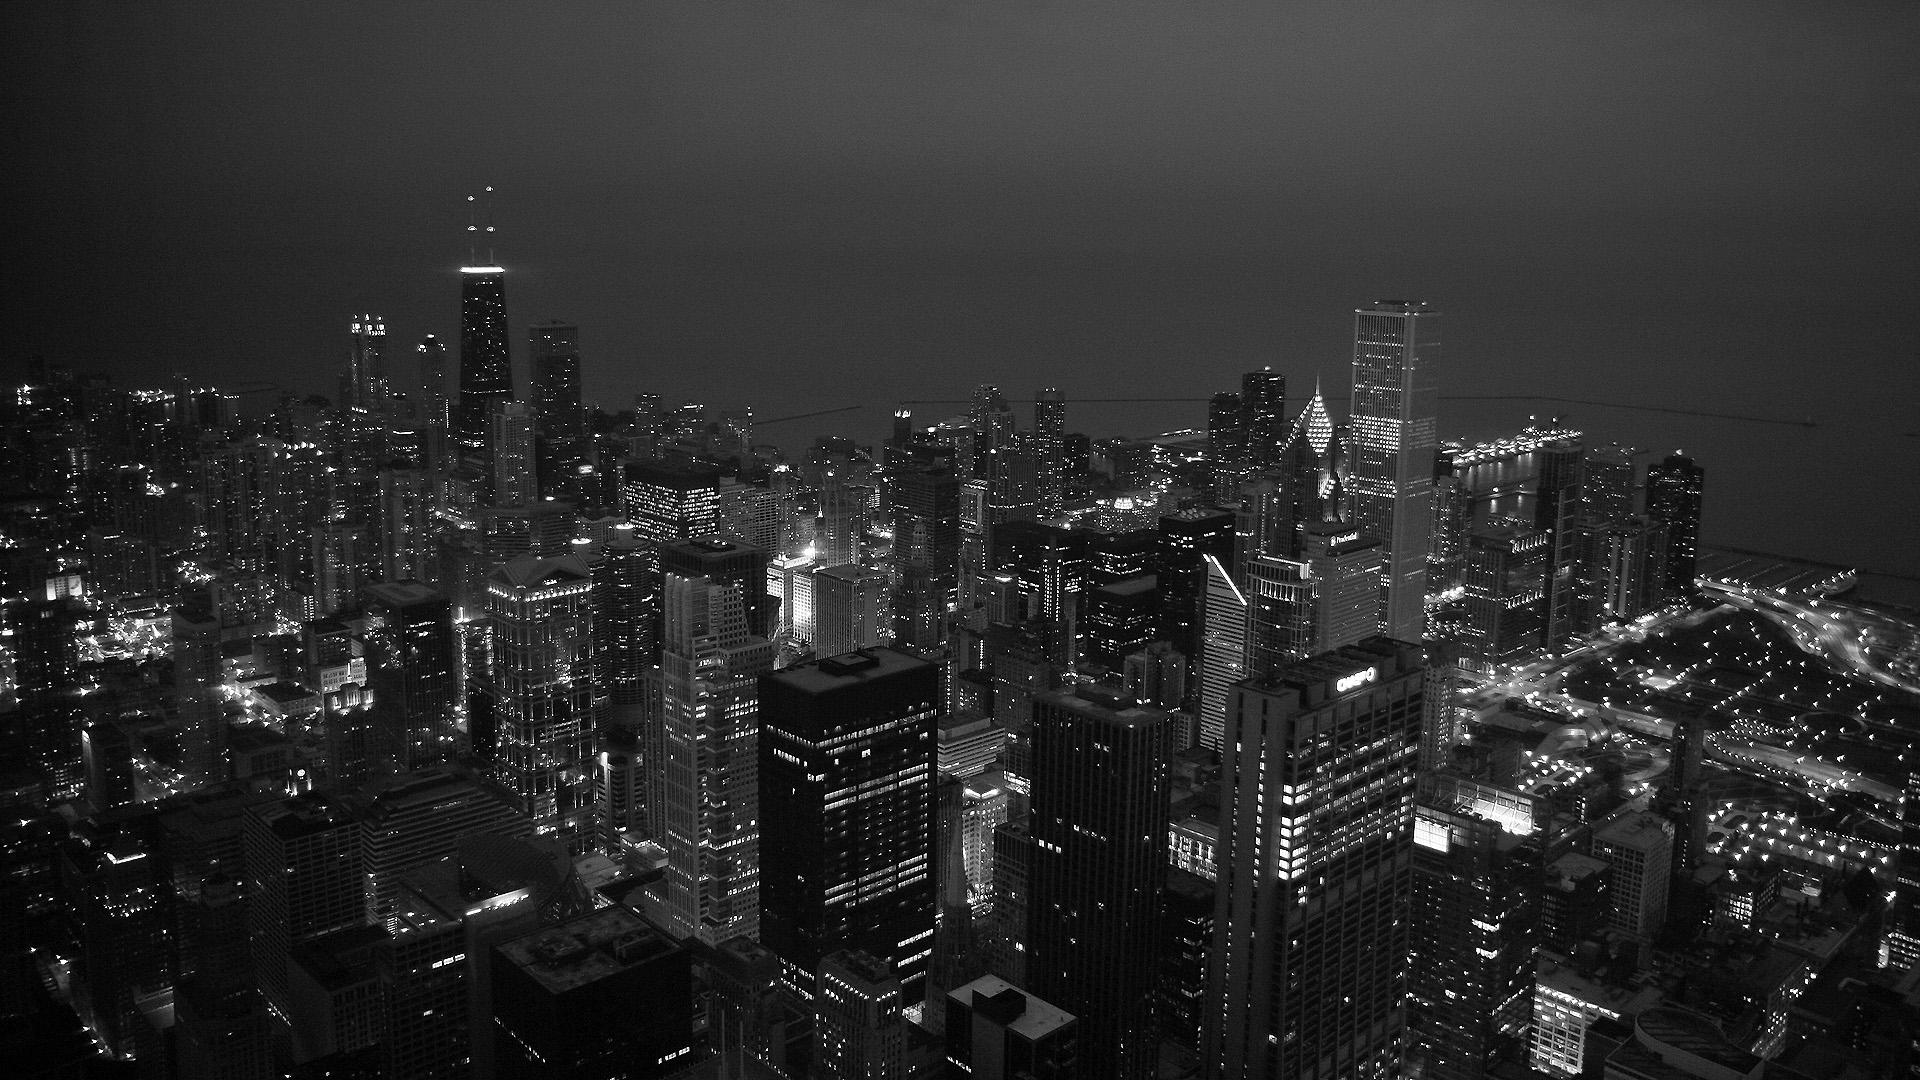 01178_chicagoatnight_1920x1080.jpg